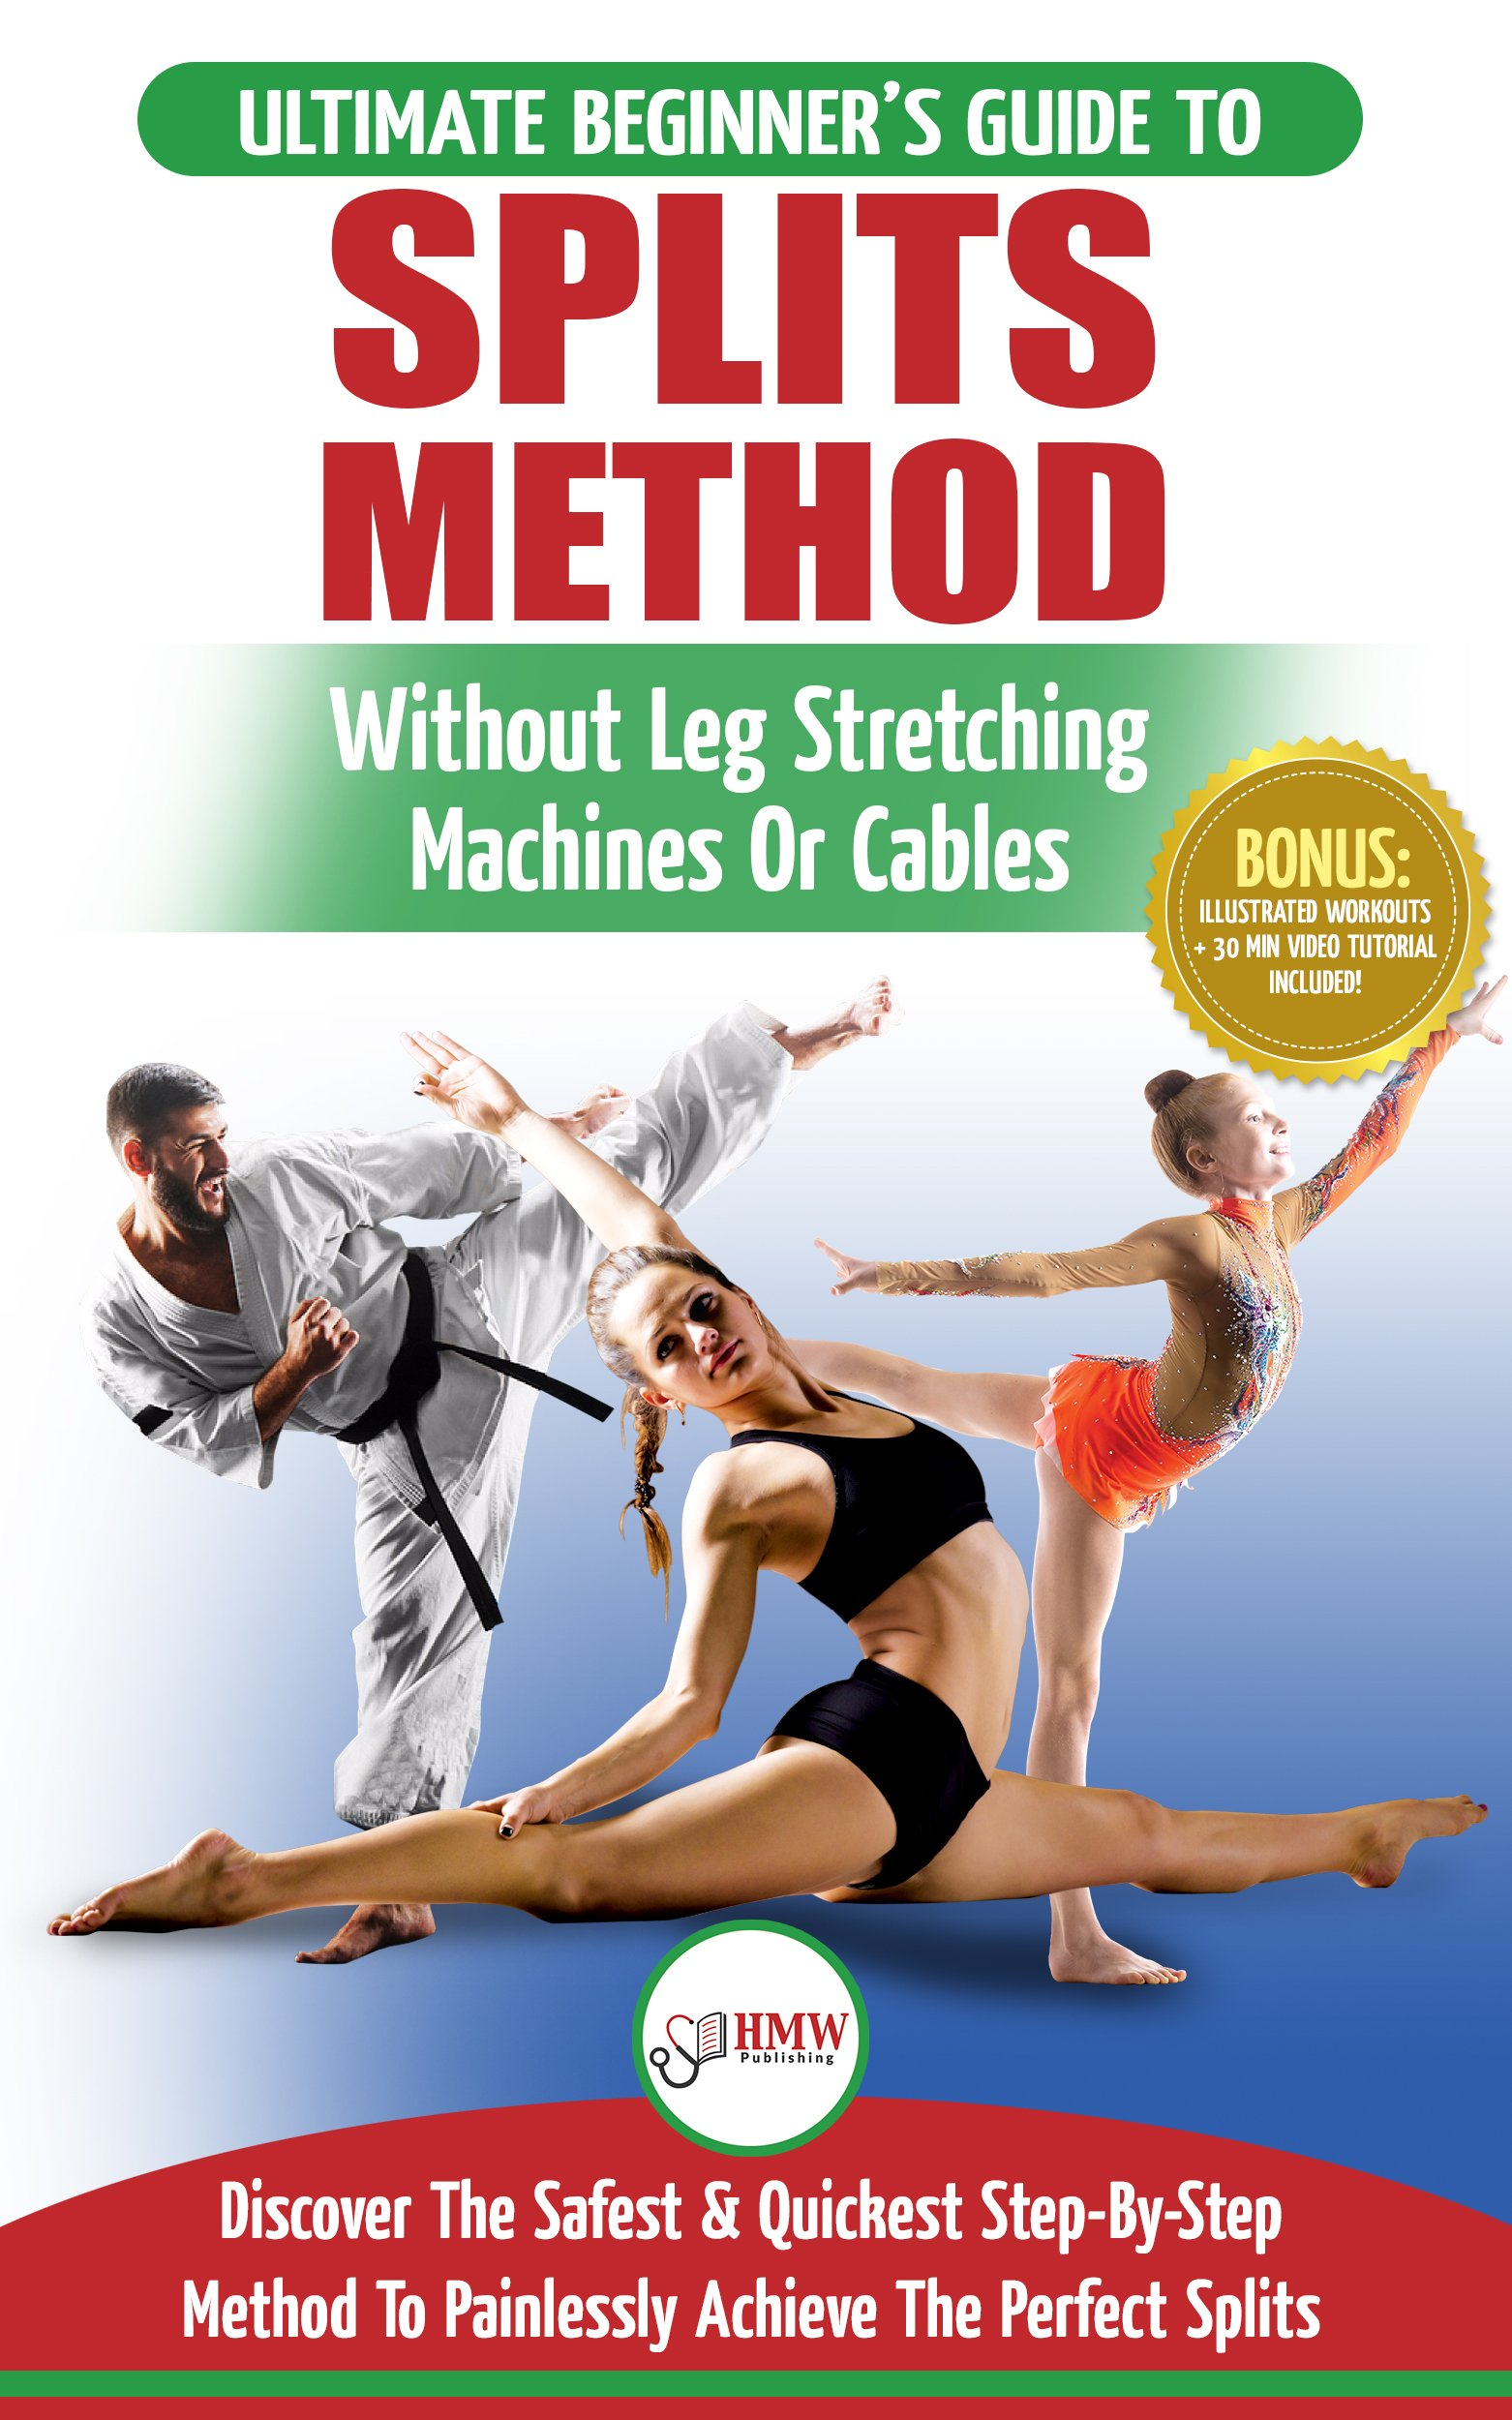 Stretching For Splits  The Ultimate Beginner's Flexibility Stretching For Splits Guide   Safe And Easy Splits Exercises Guide To Stretch Painlessly  No Machines ... Or Equipment Needed   English Edition